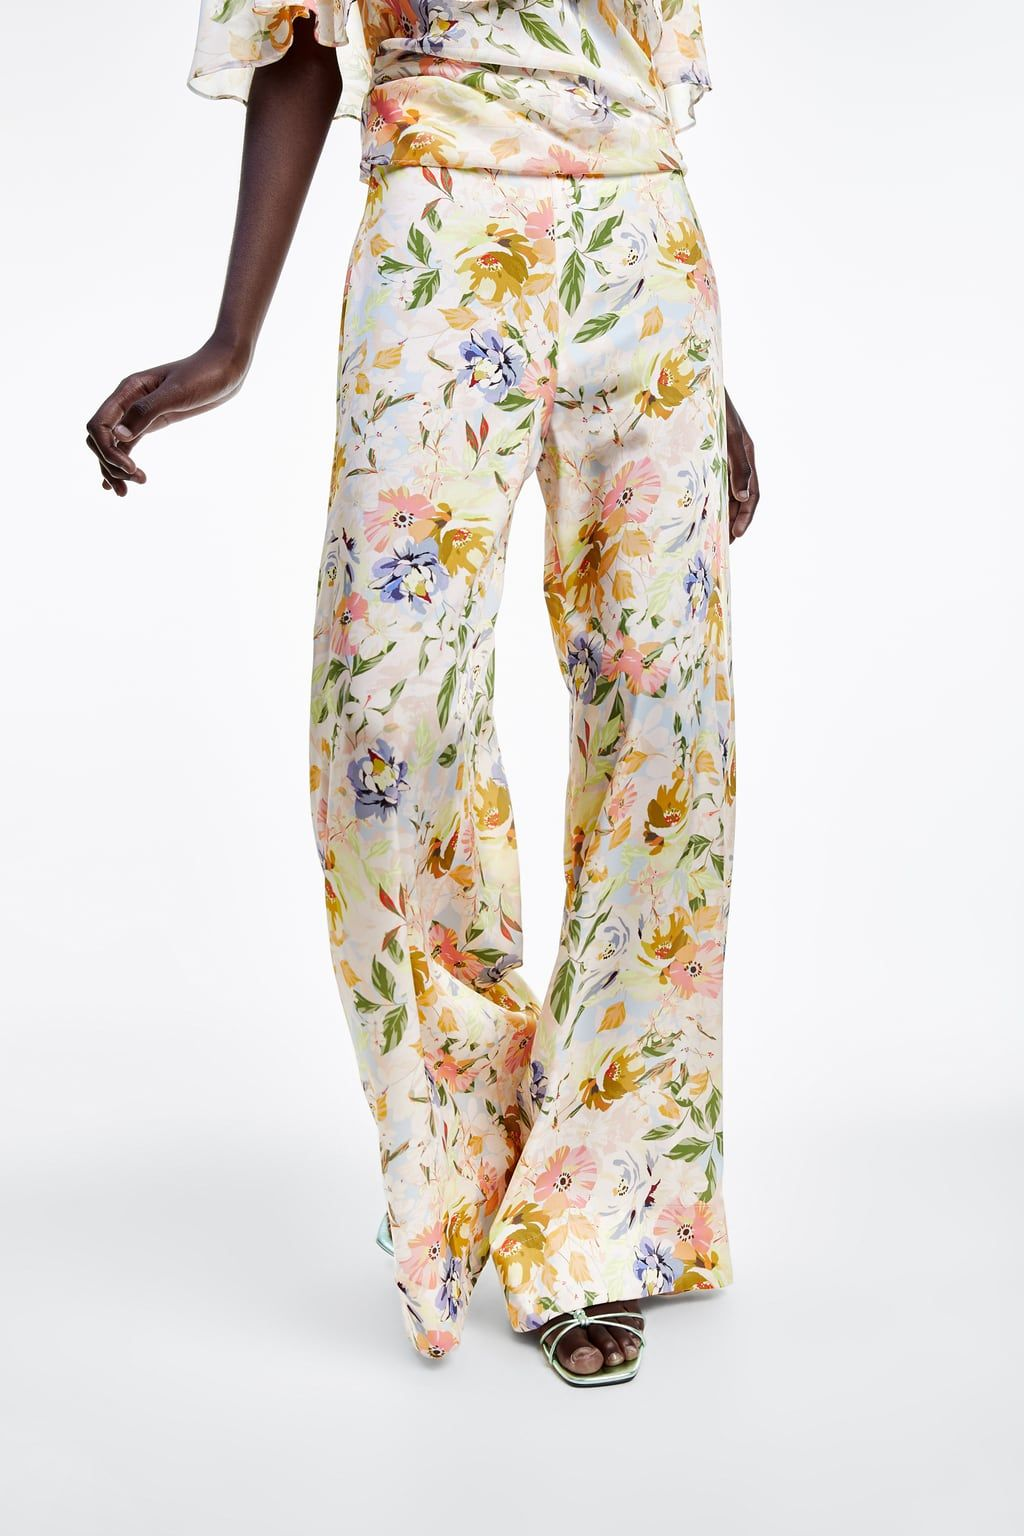 Photo of PANTALÓN ANCHO ESTAMPADO FLORAL